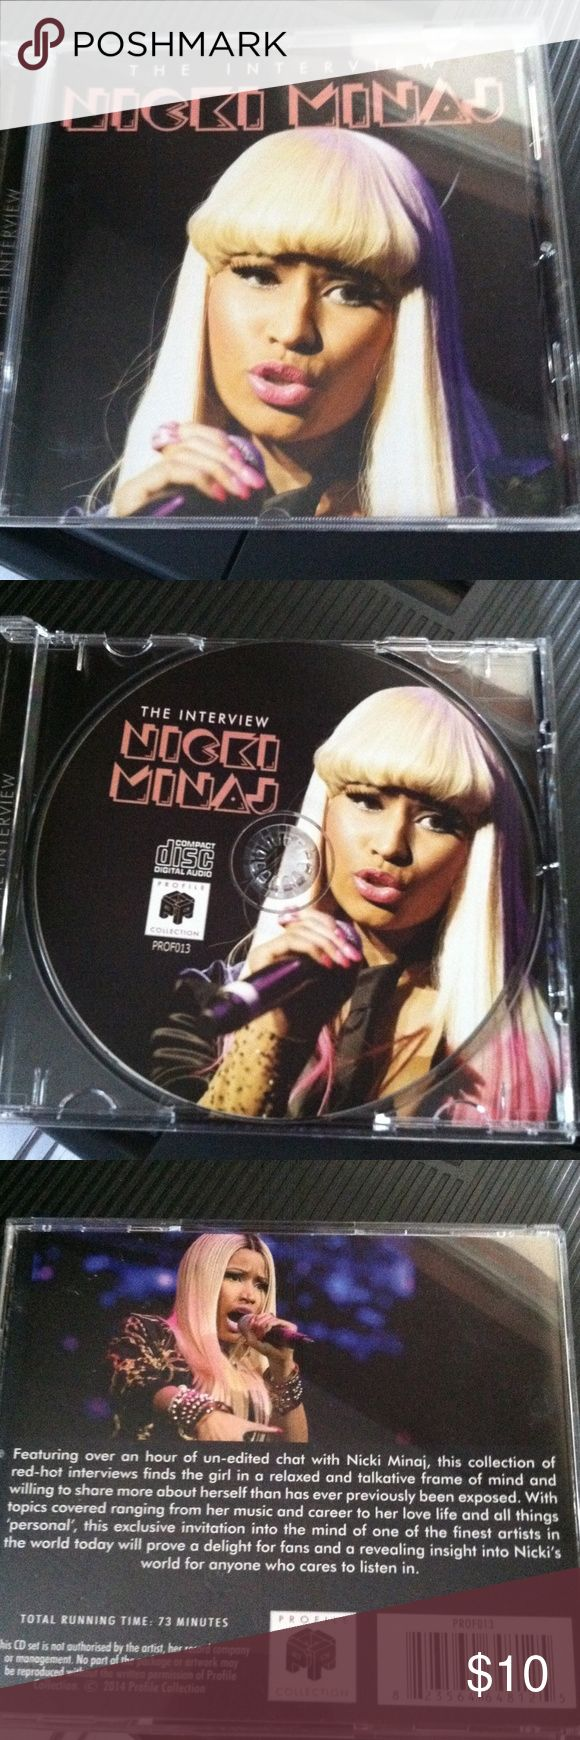 Nicki Minaj The Interview This is a gently used cd of a 73 minute interview with Nicki un-edited. Other